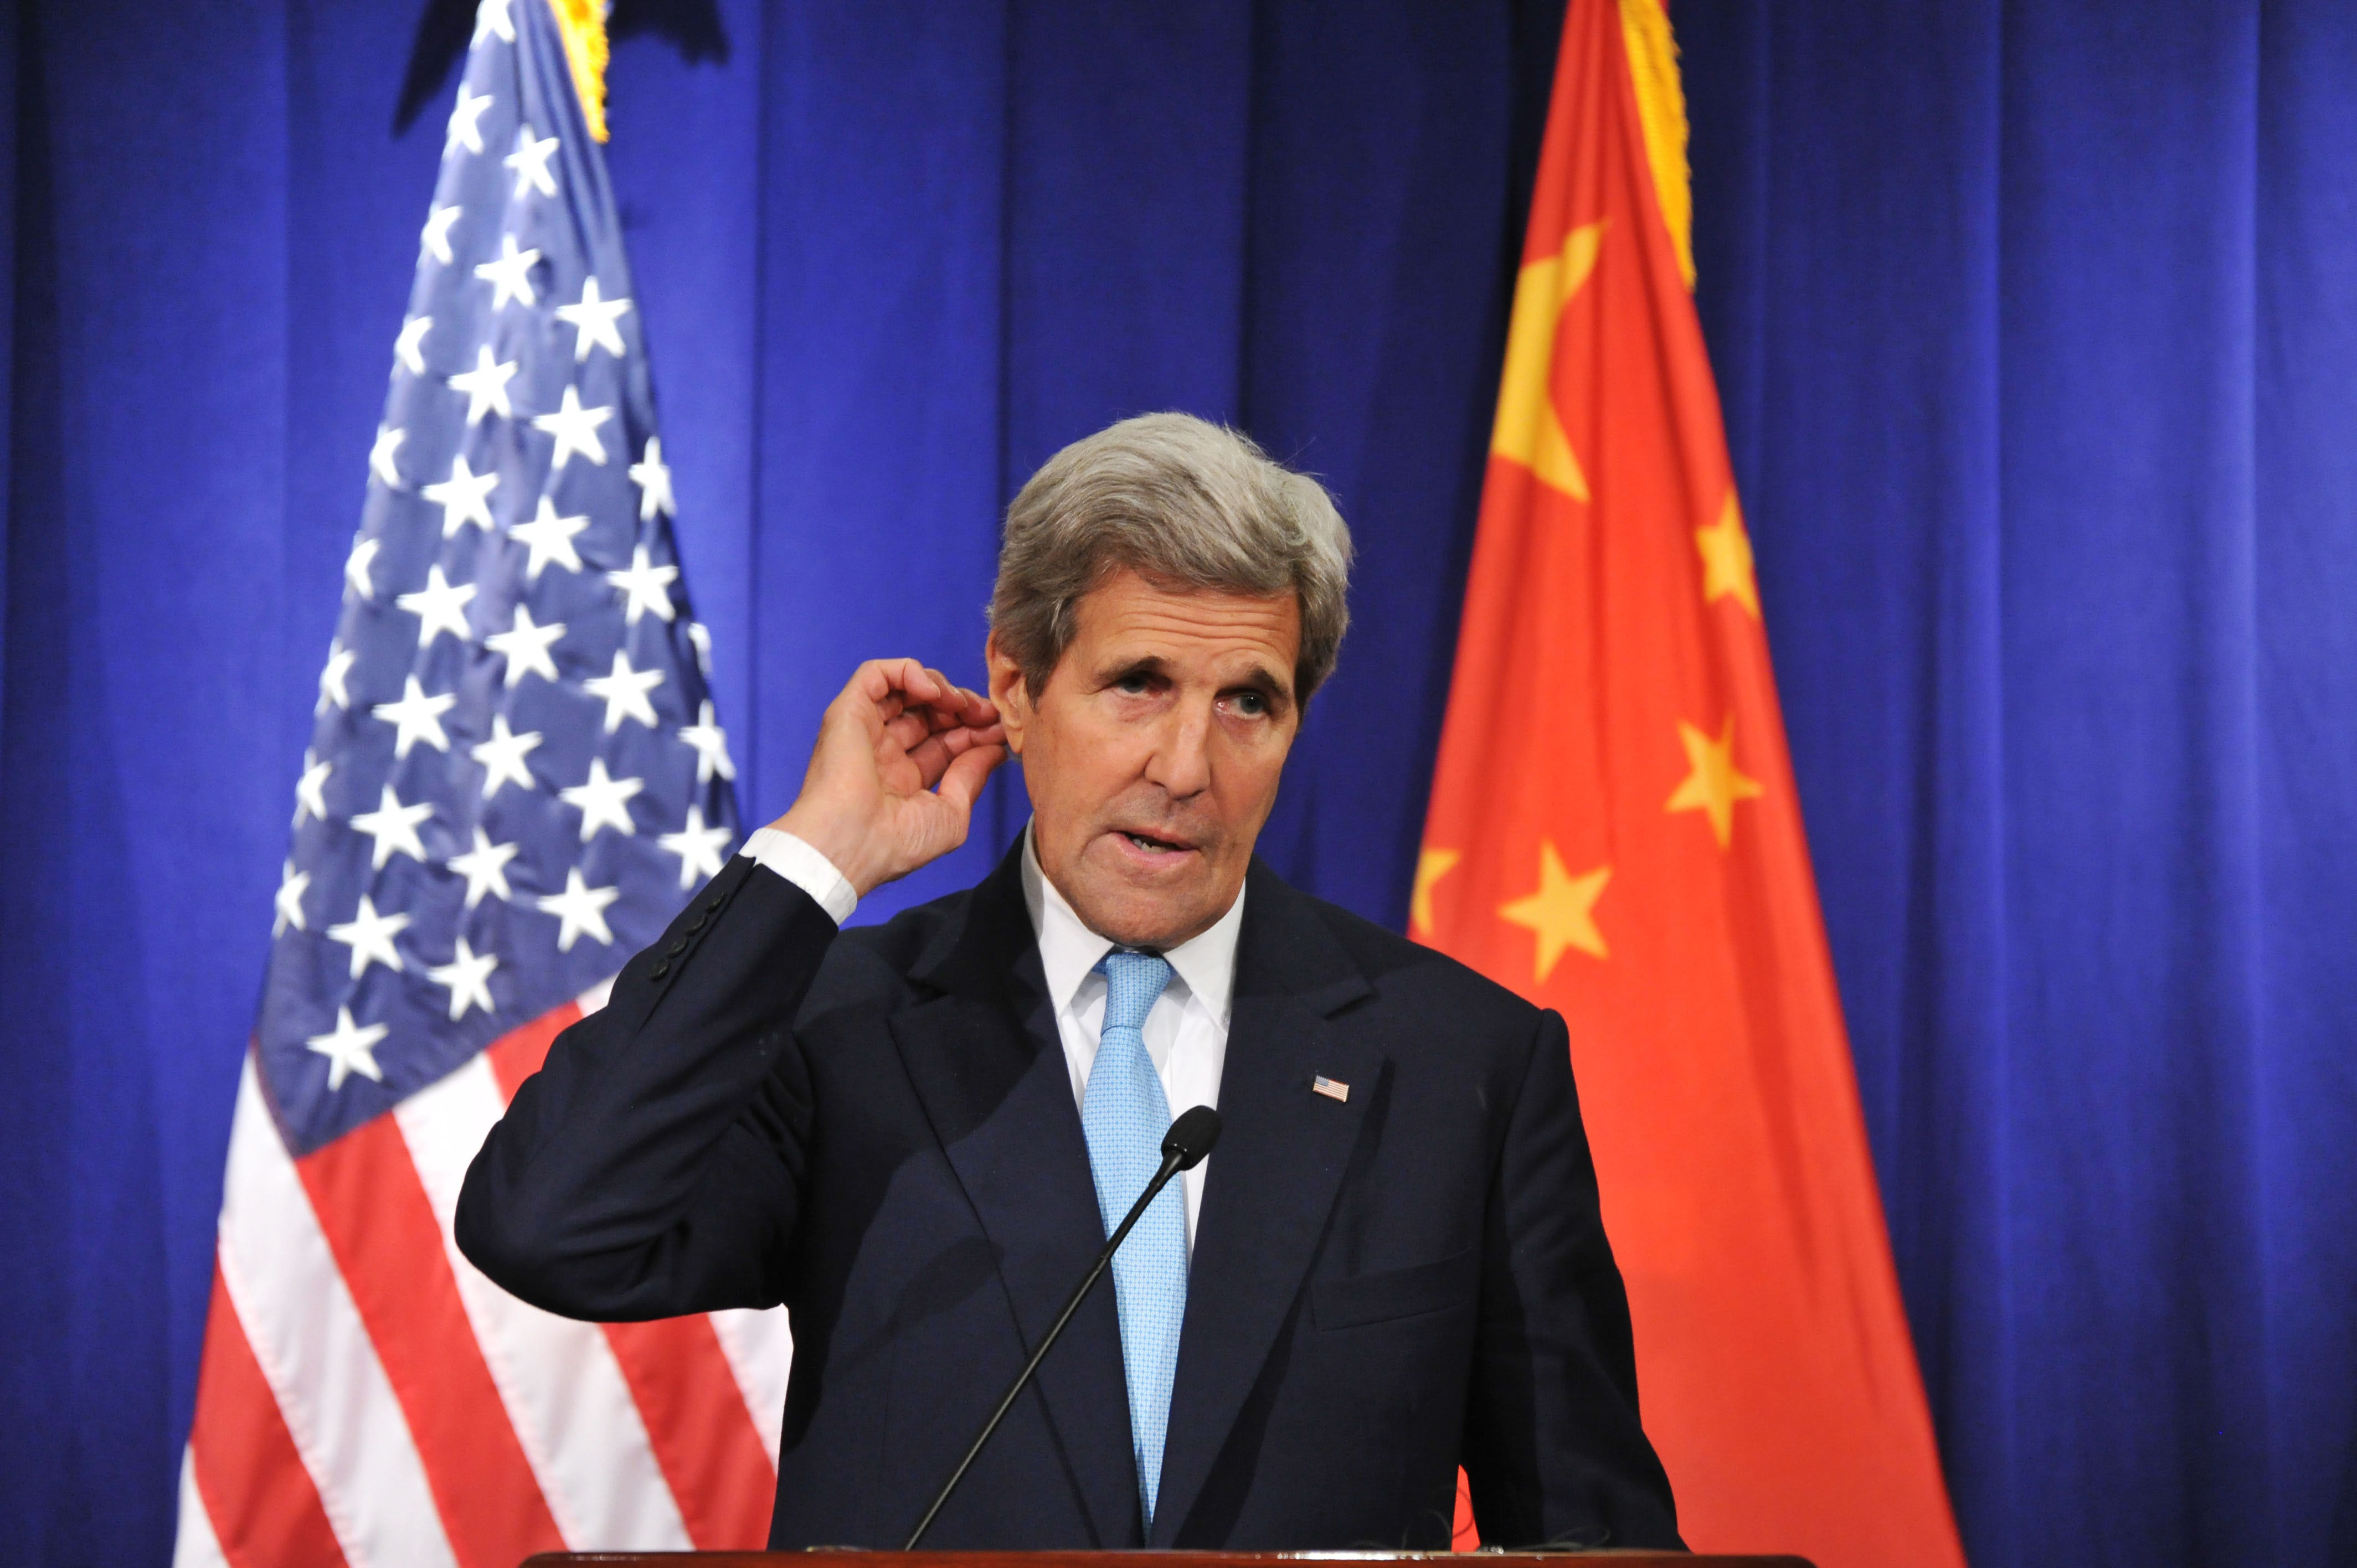 BEIJING, CHINA - JUNE 07: (CHINA OUT) US Secretary of State John Kerry delivers a speech on a press conference during the Eighth Round of US - China Strategic and Economic Dialogues & the Seventh Round of US - China High-Level Consultation on People-to-People Exchange on June 7, 2016 in Beijing, China. As two large economic nations, the dialogues and cooperation between US and China will make significant repercussions to world economy.